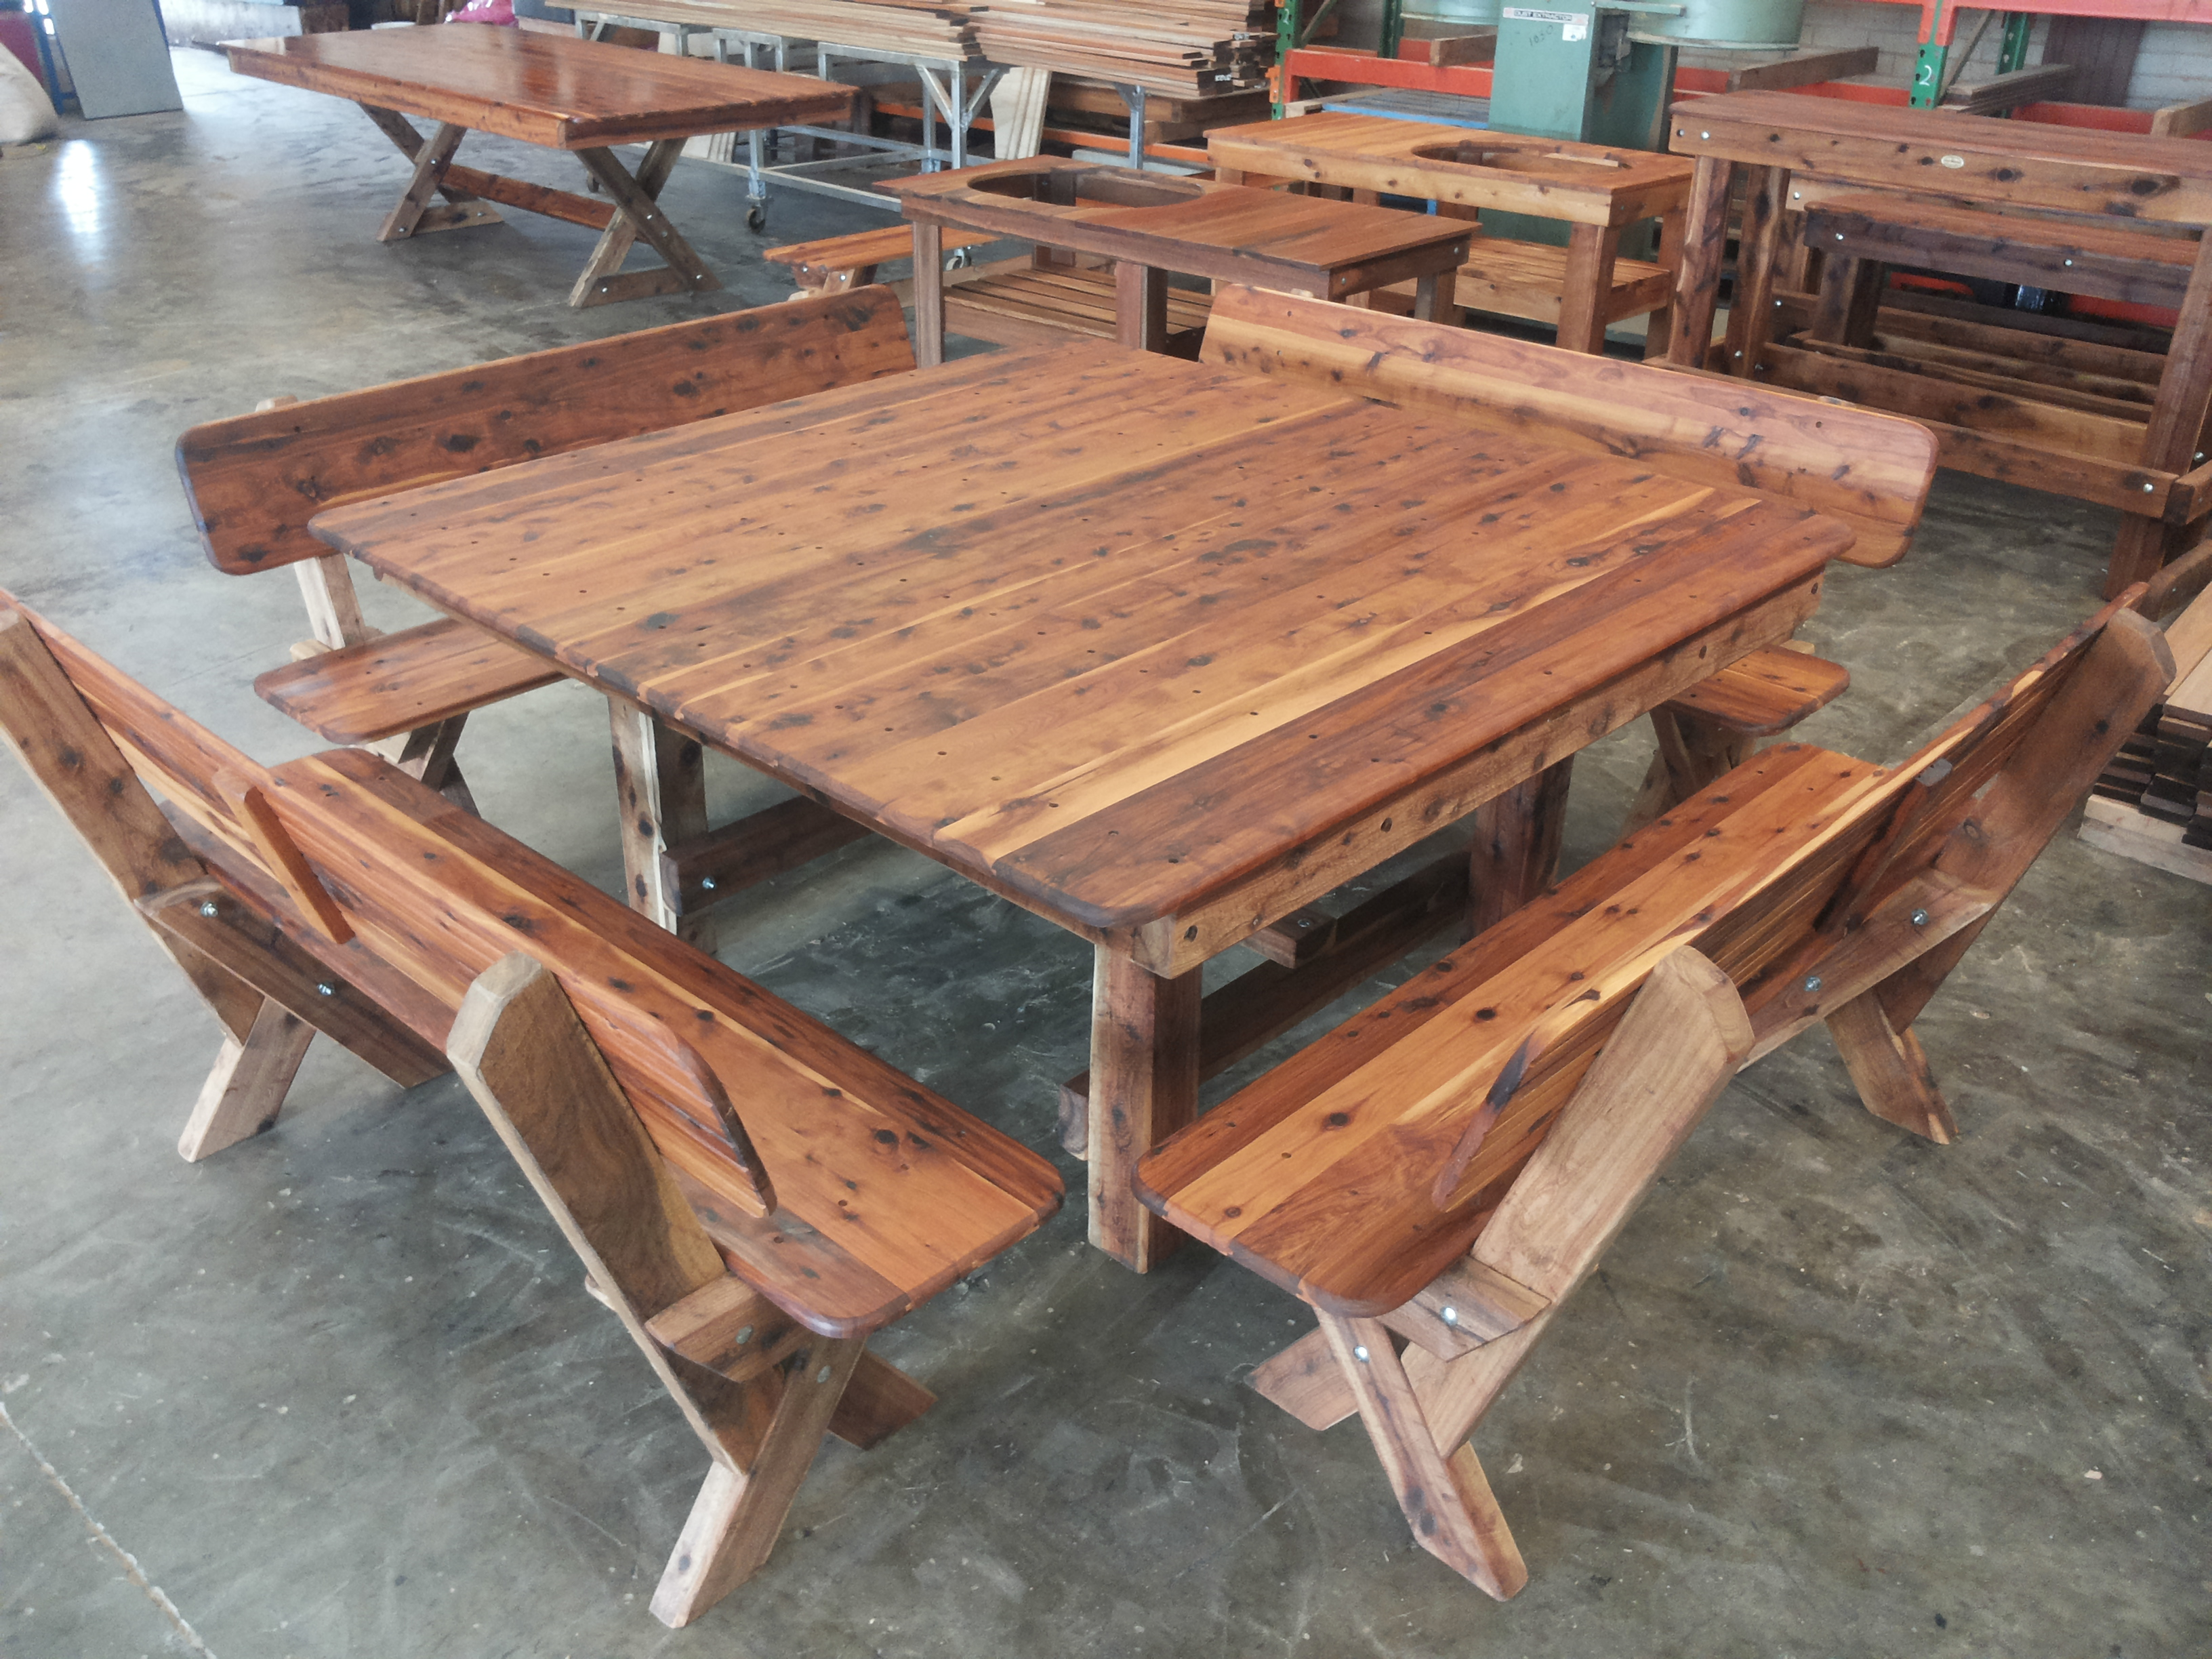 Wondrous Southport 1600Mm Cypress Outdoor Timber Table Outdoor Furniture Online Currumbin Brisbane Timber Furniture Gamerscity Chair Design For Home Gamerscityorg